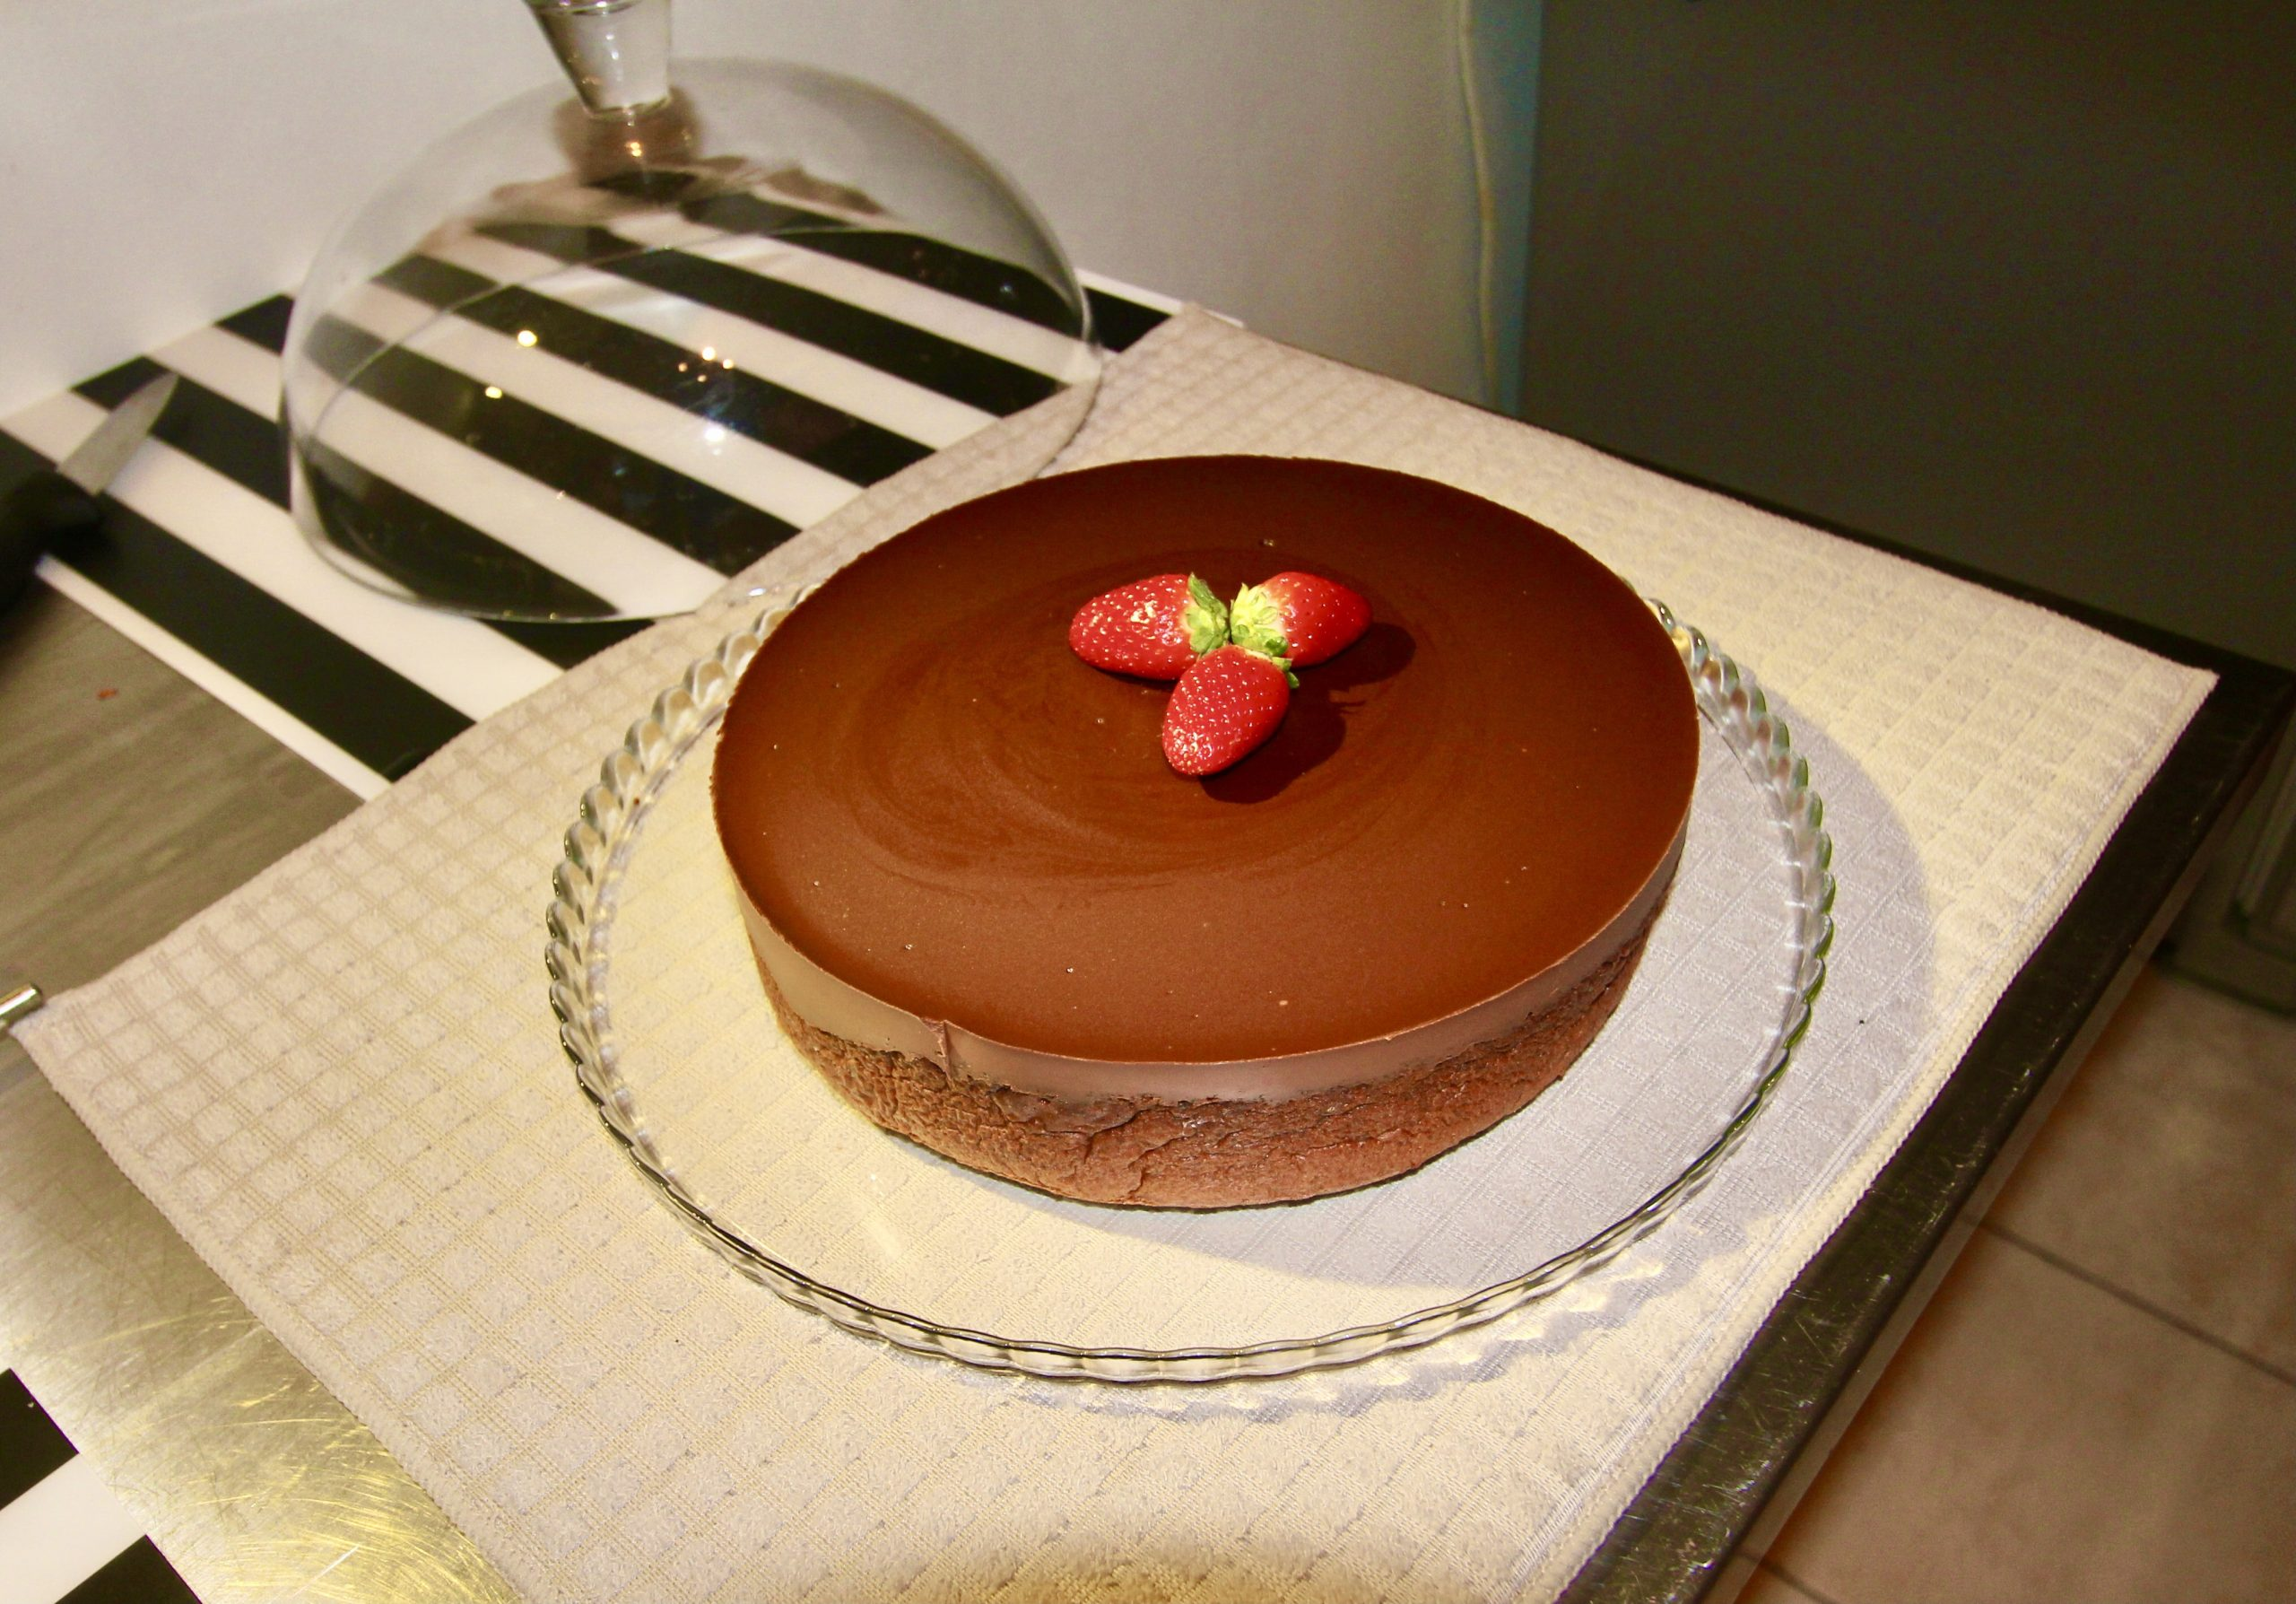 Rich chocolate cake with hazelnuts